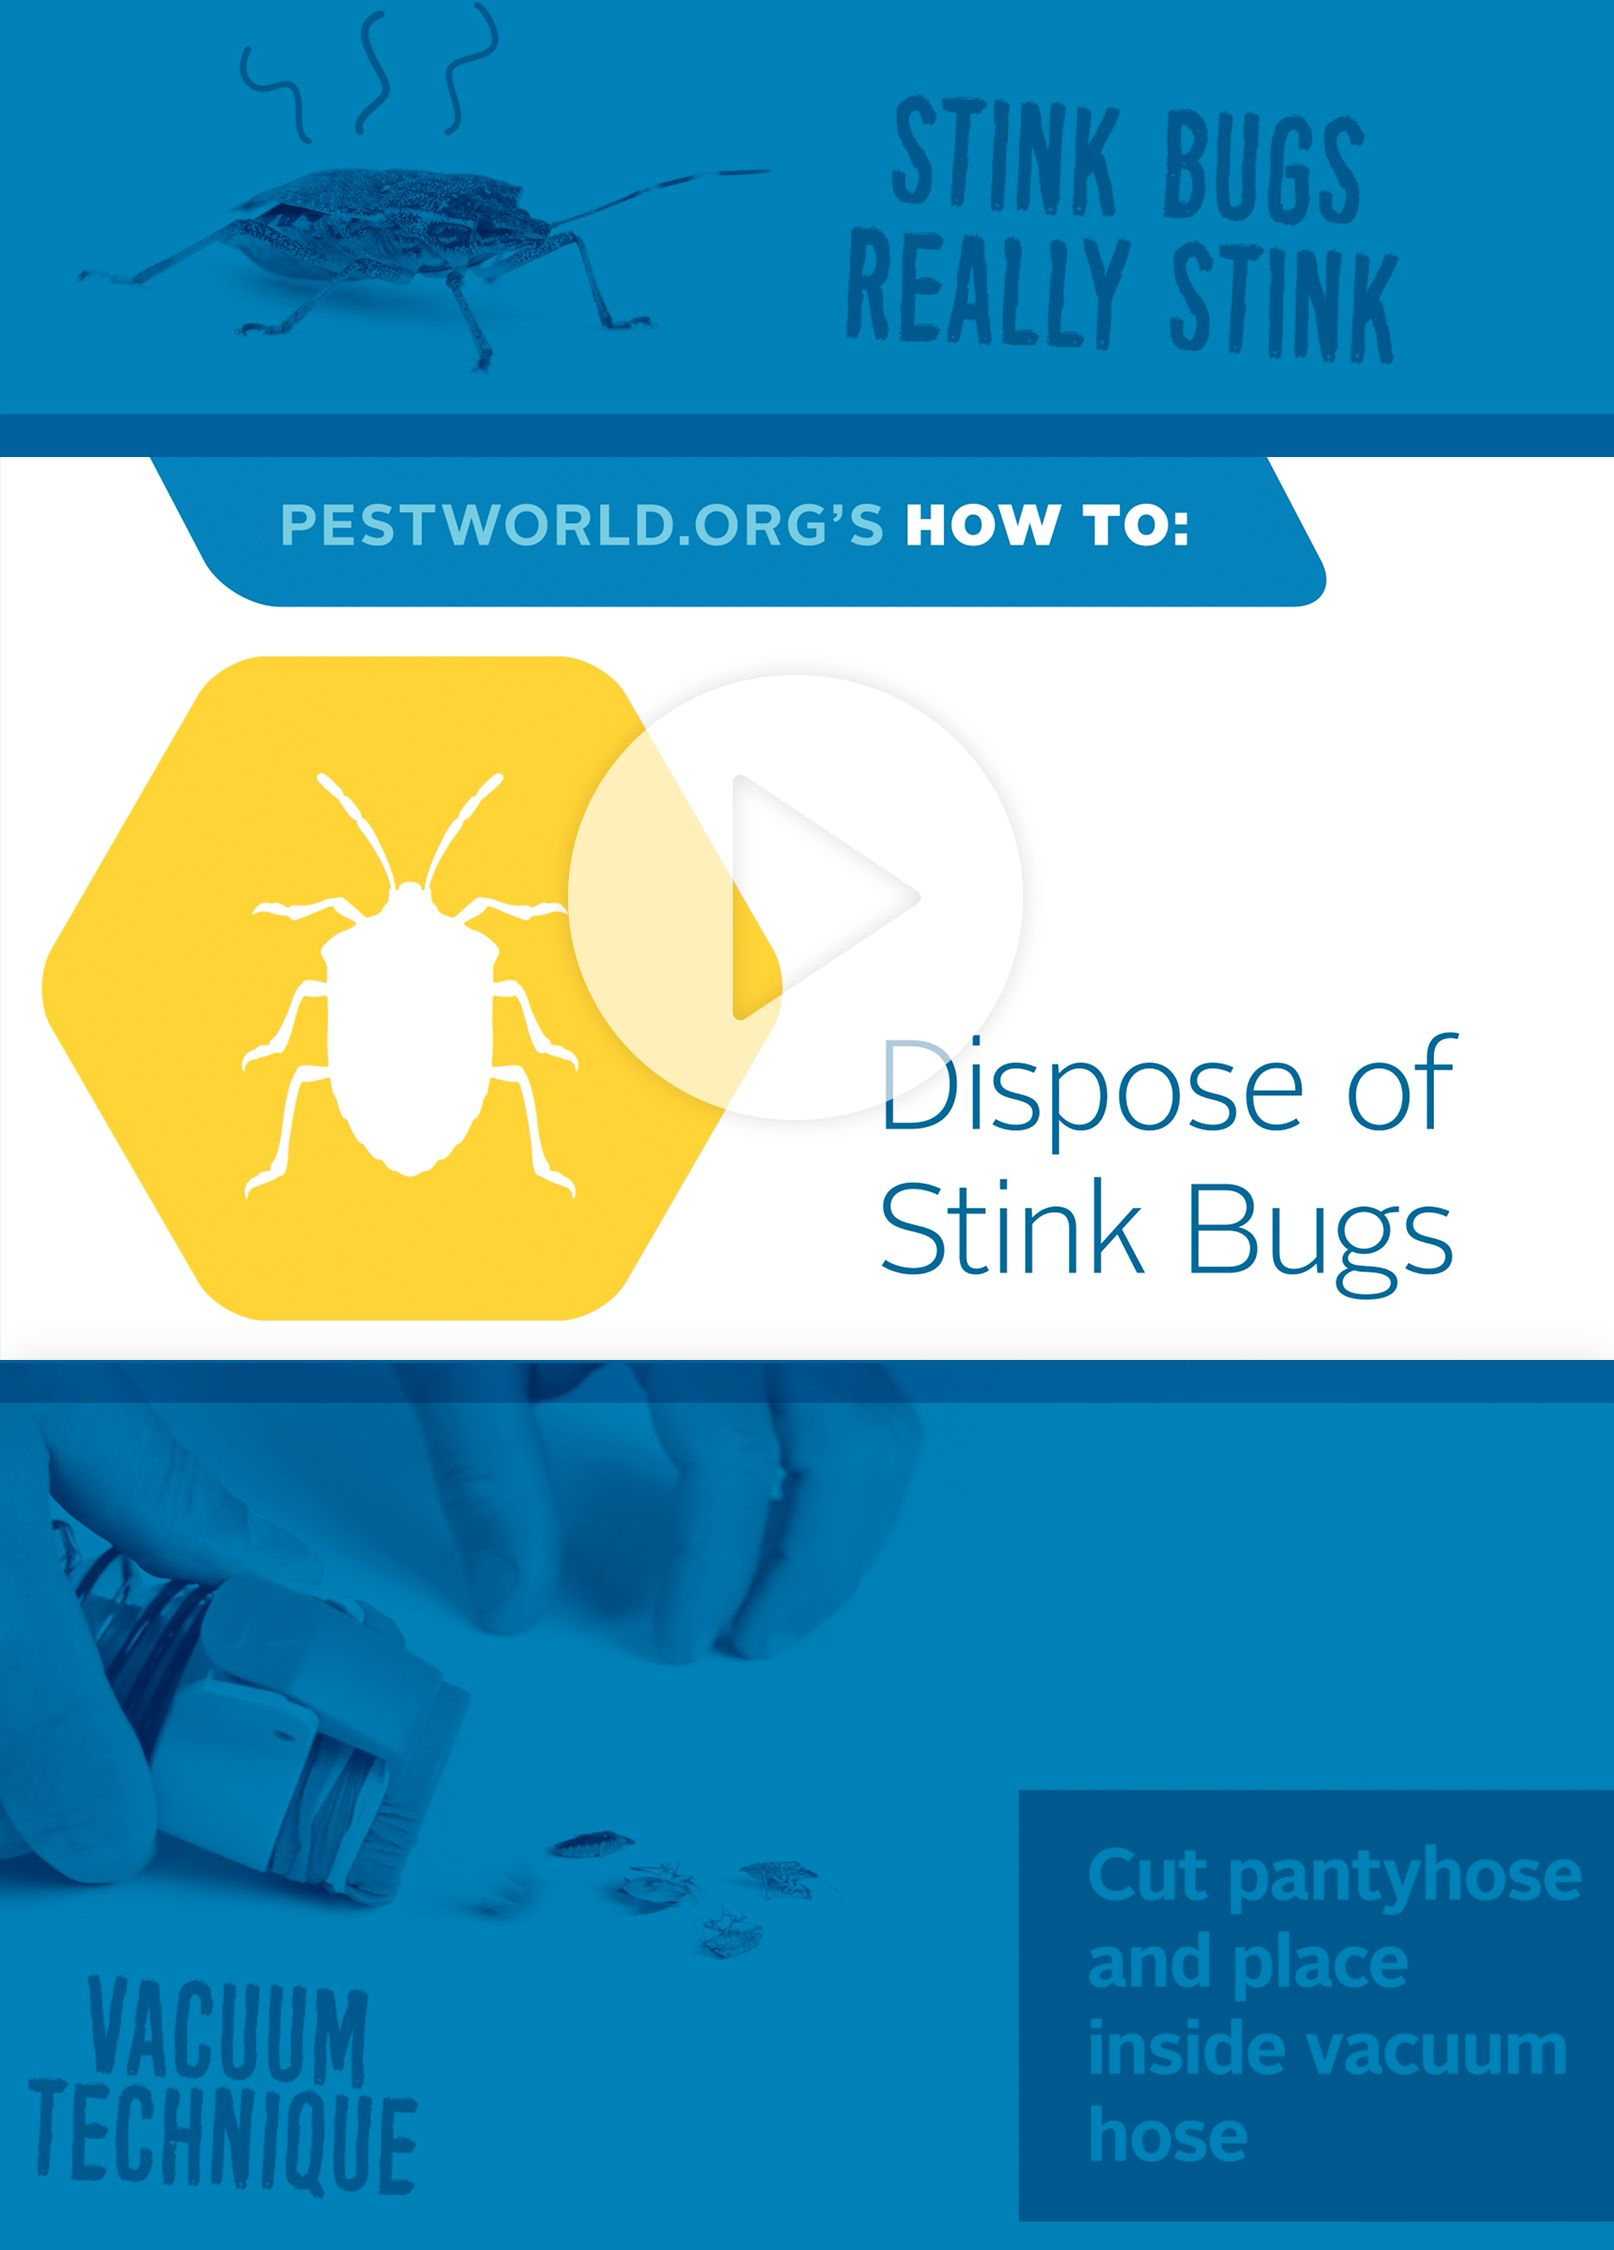 Be sure to properly dispose of stink bugs to avoid a